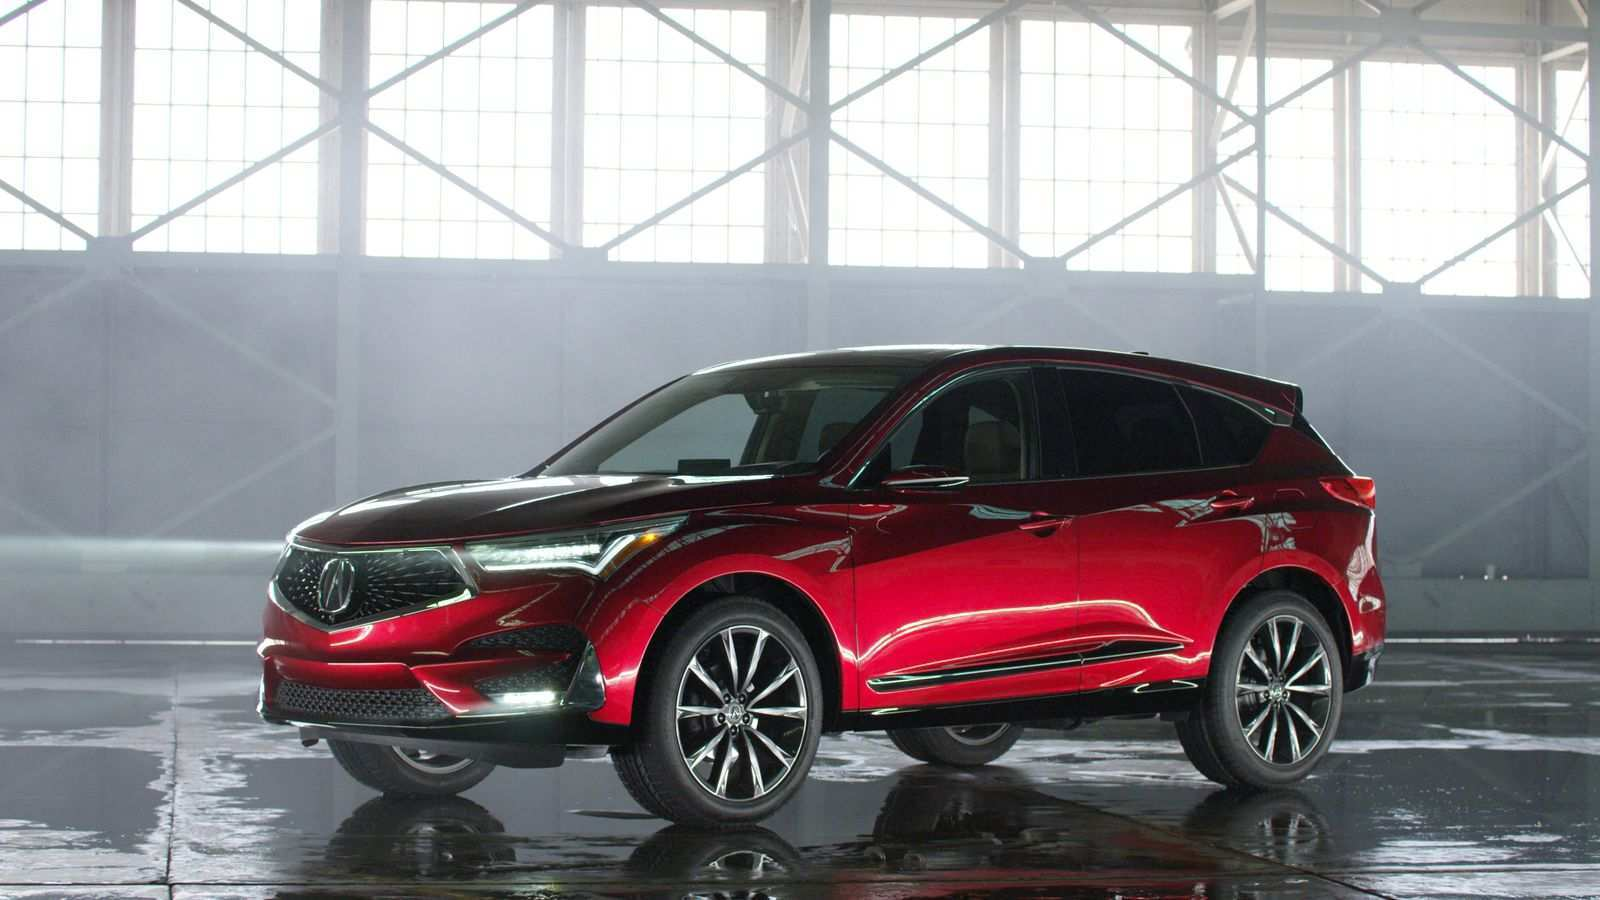 81 Great The 2019 Acura Rdx Quarter Mile Price And Review Review by The 2019 Acura Rdx Quarter Mile Price And Review